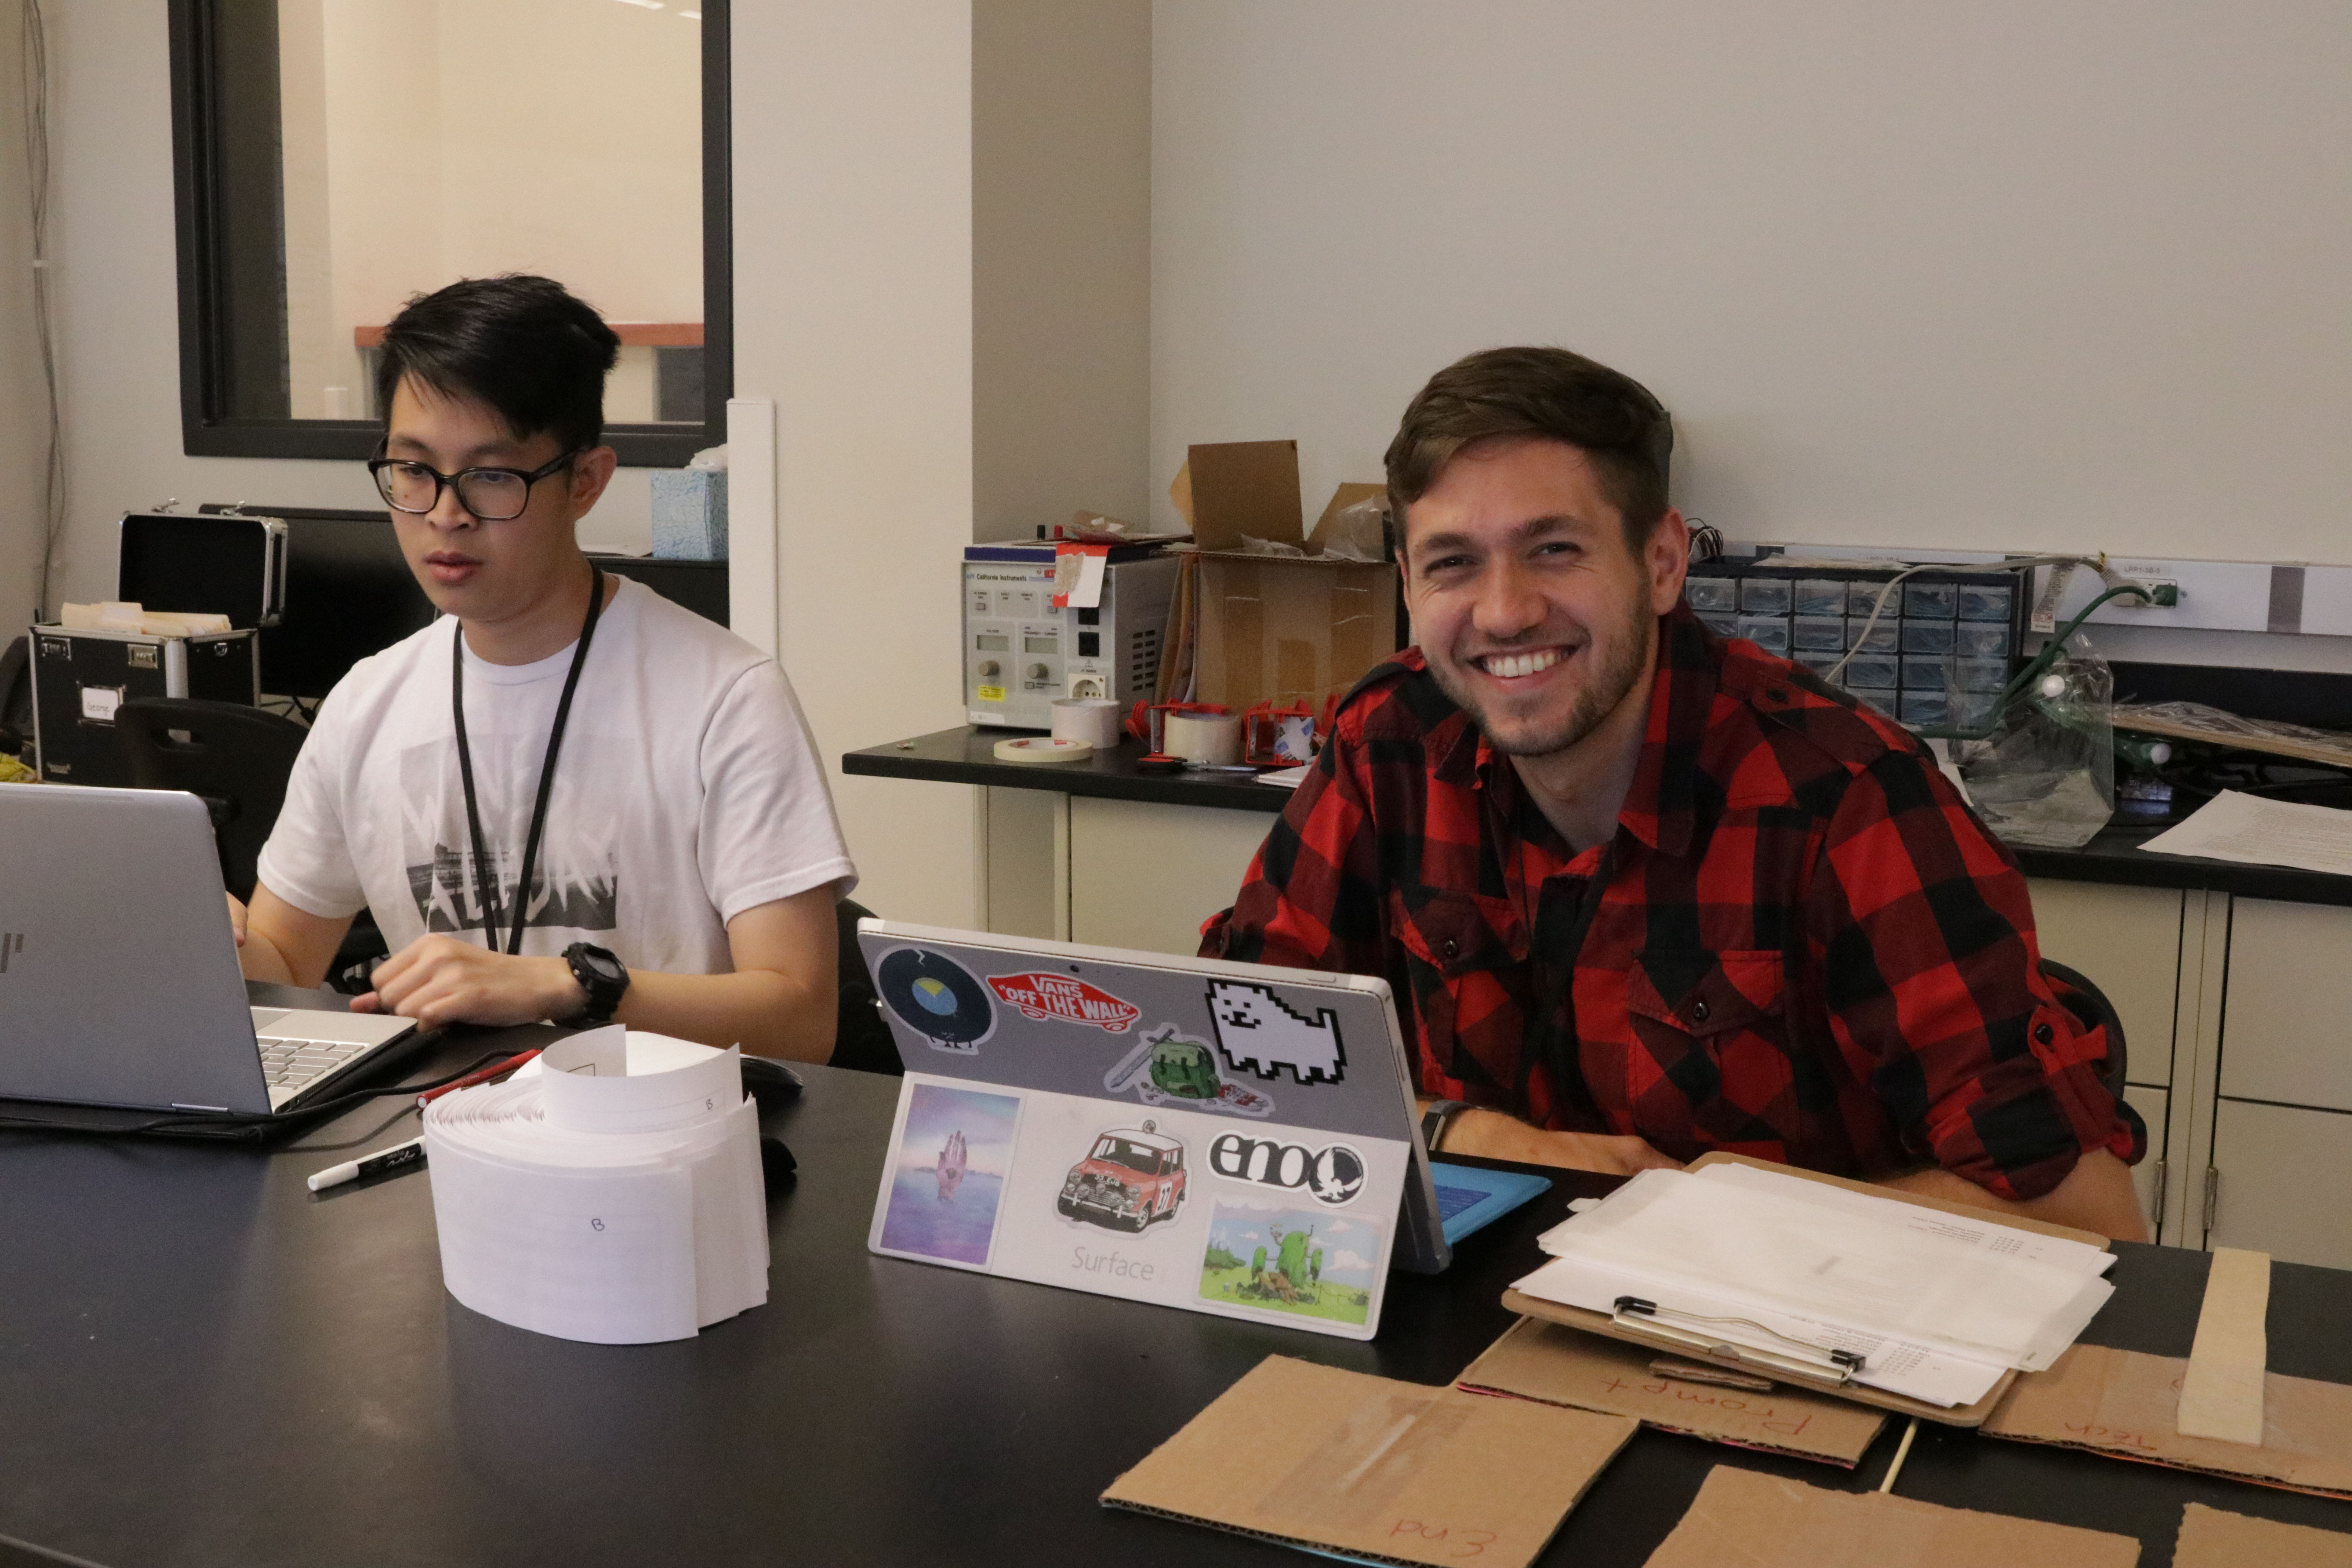 graduate students wok on their laptops